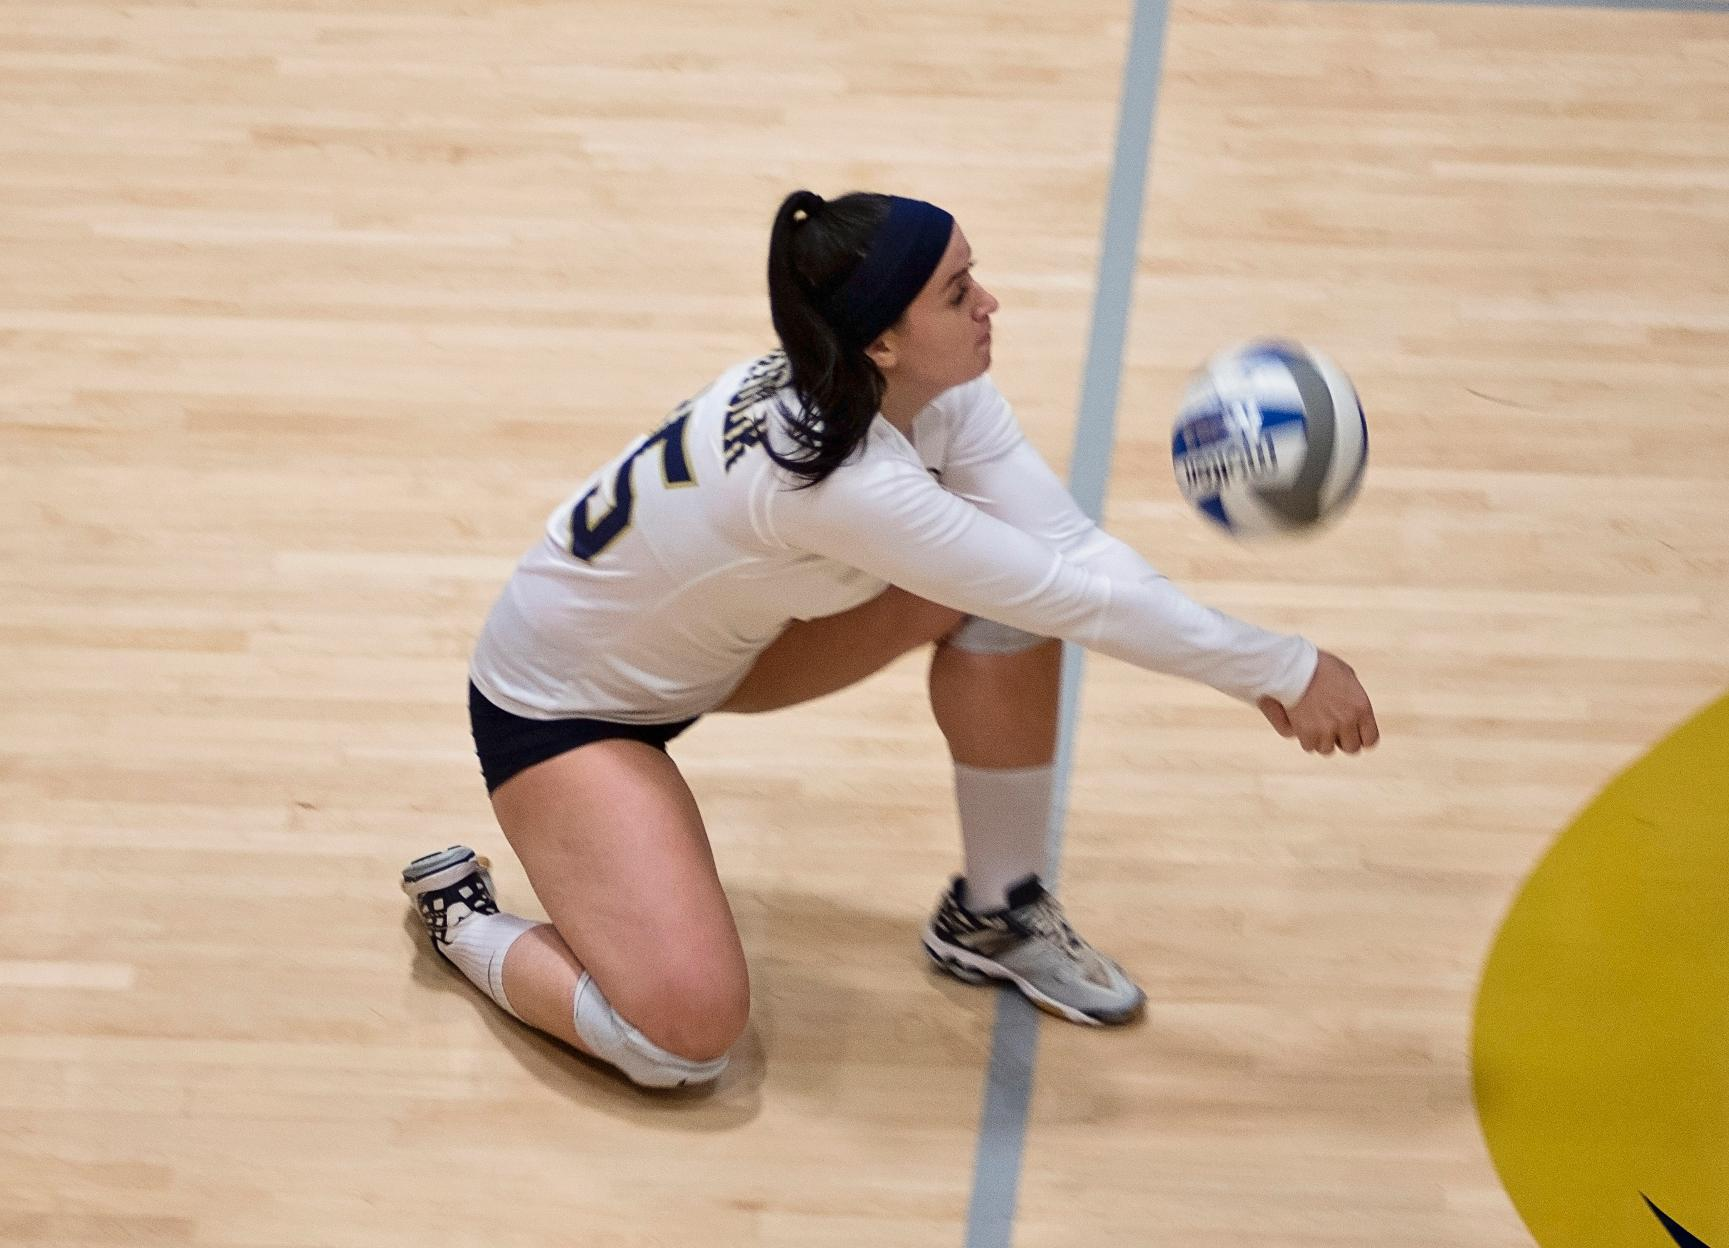 Rivier Rolls Past Women's Volleyball in Straight Sets